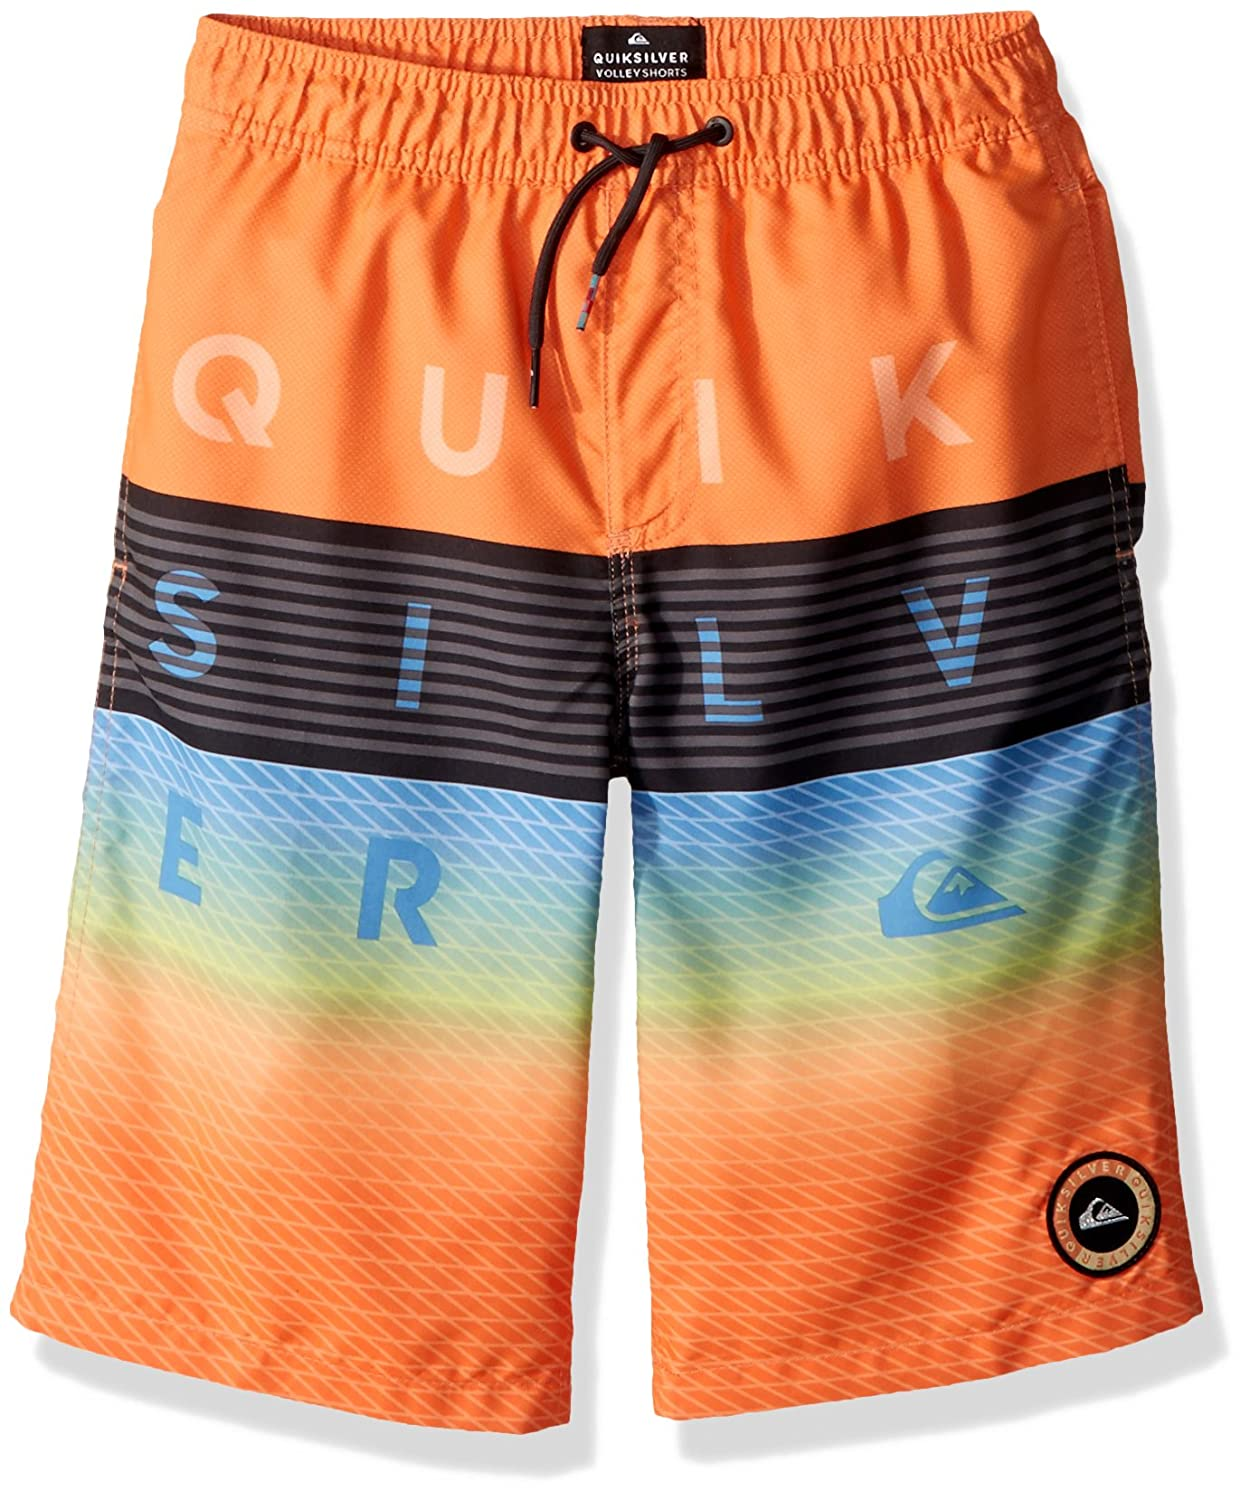 Quiksilver Boys Word Block Volley Kids Shorts